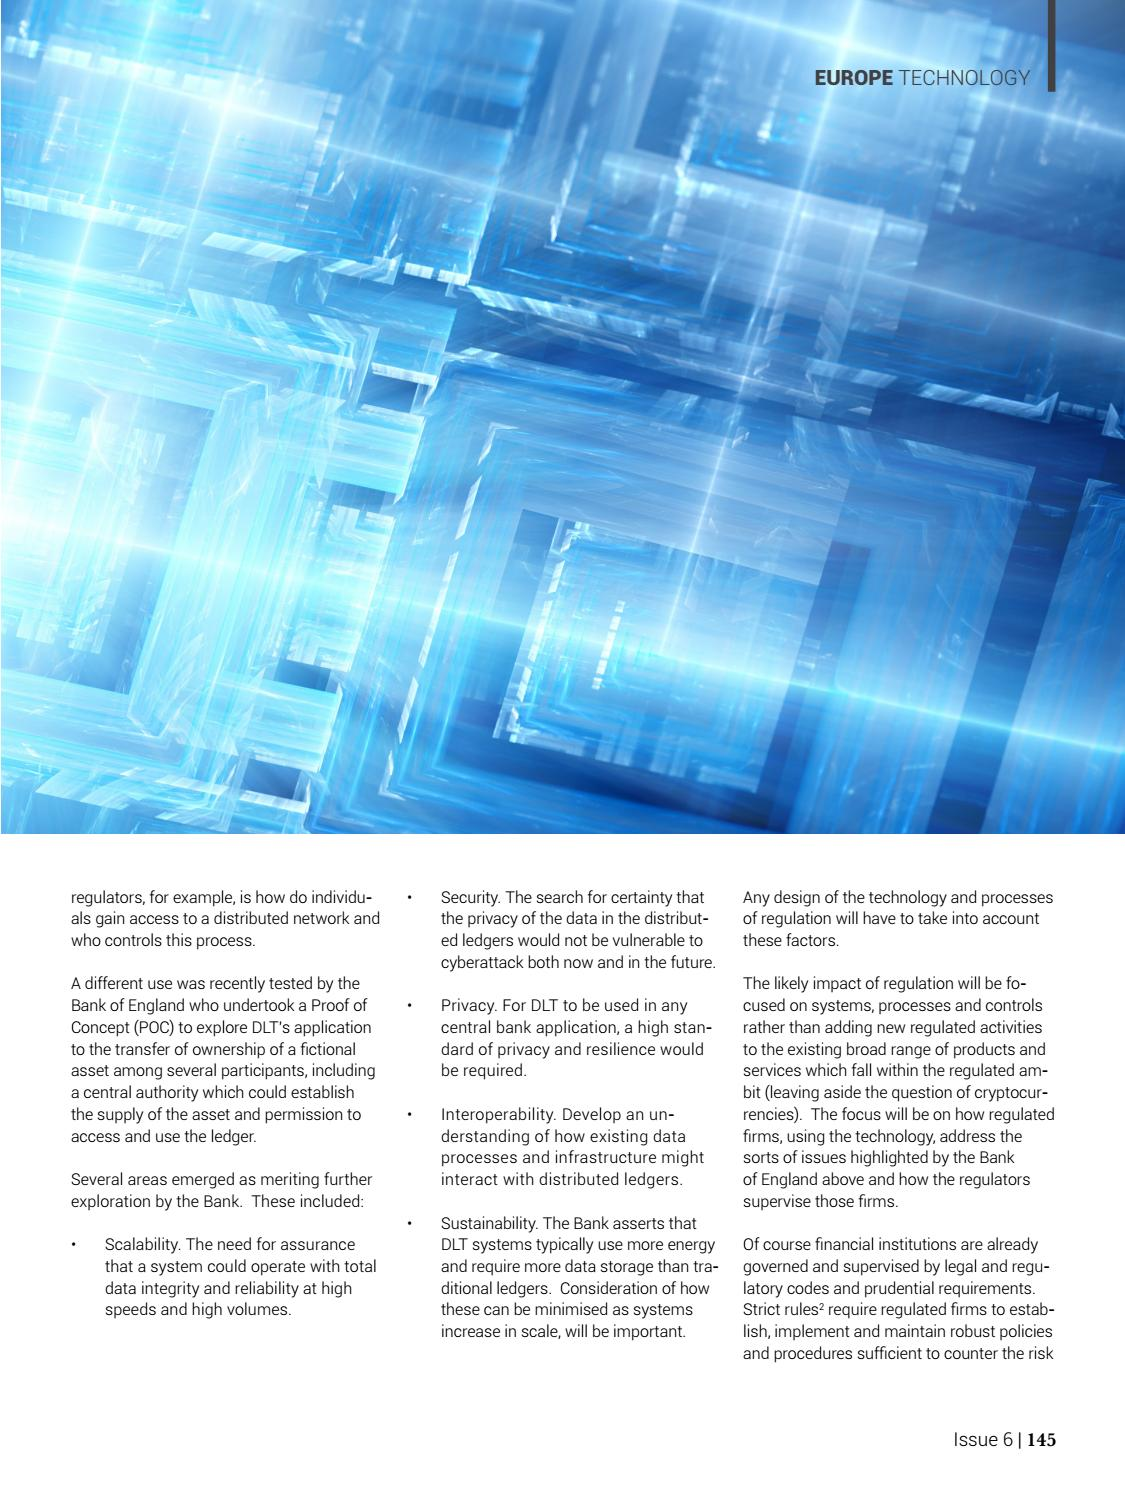 Global Banking and Finance Review Magazine - Business